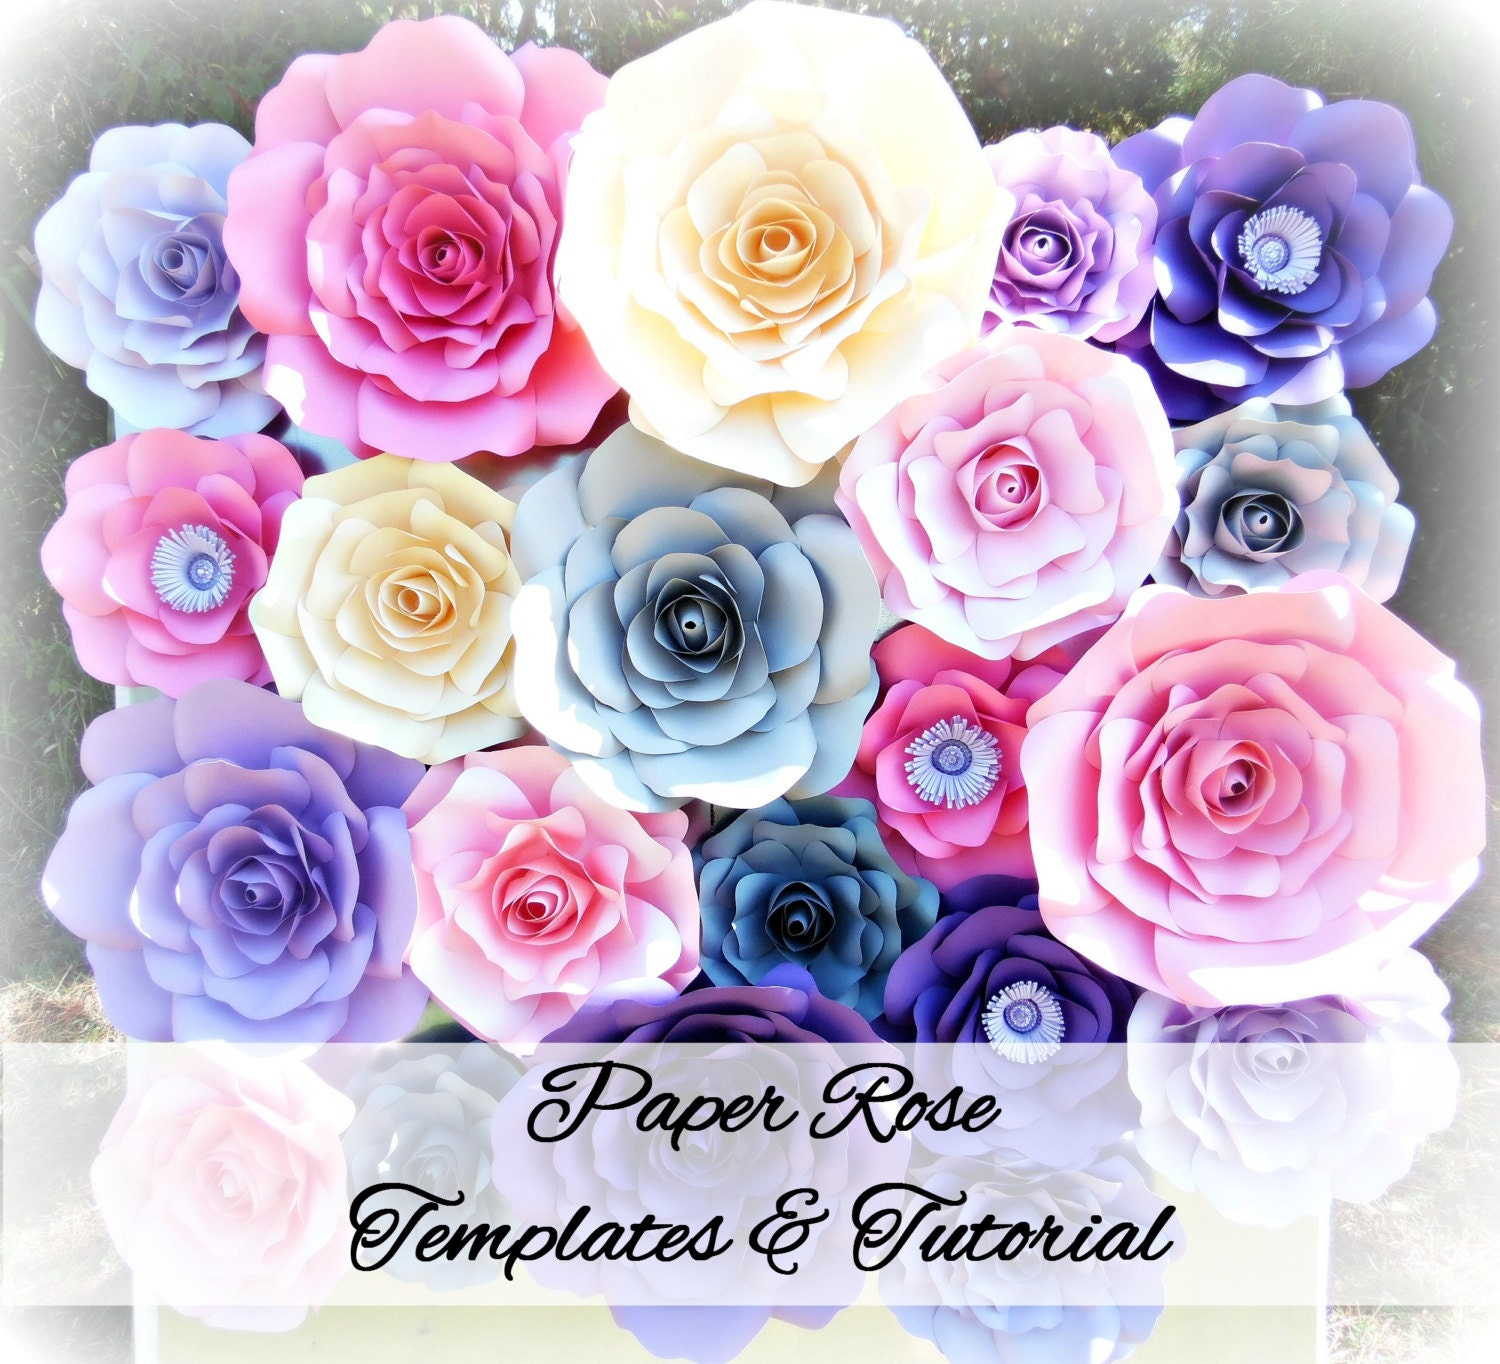 Diy Giant Rose Templates Paper Rose Patterns Tutorials Paper